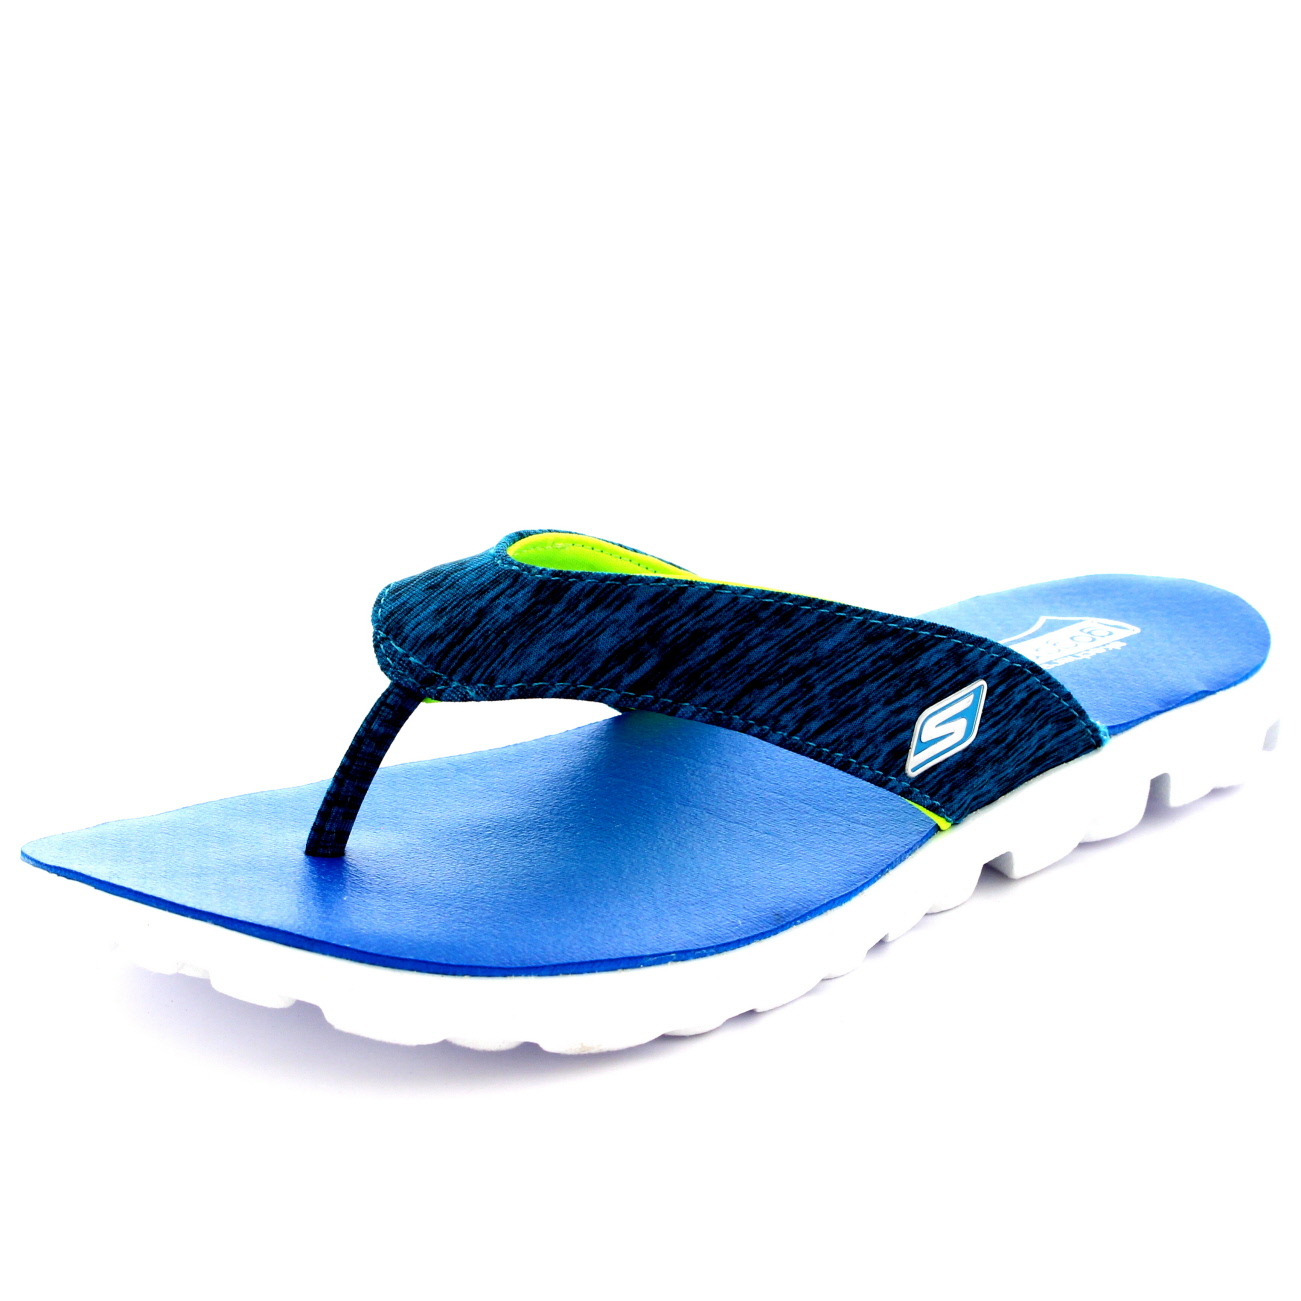 6bb7aefeb9 sketcher ladies sandals for sale   OFF48% Discounts